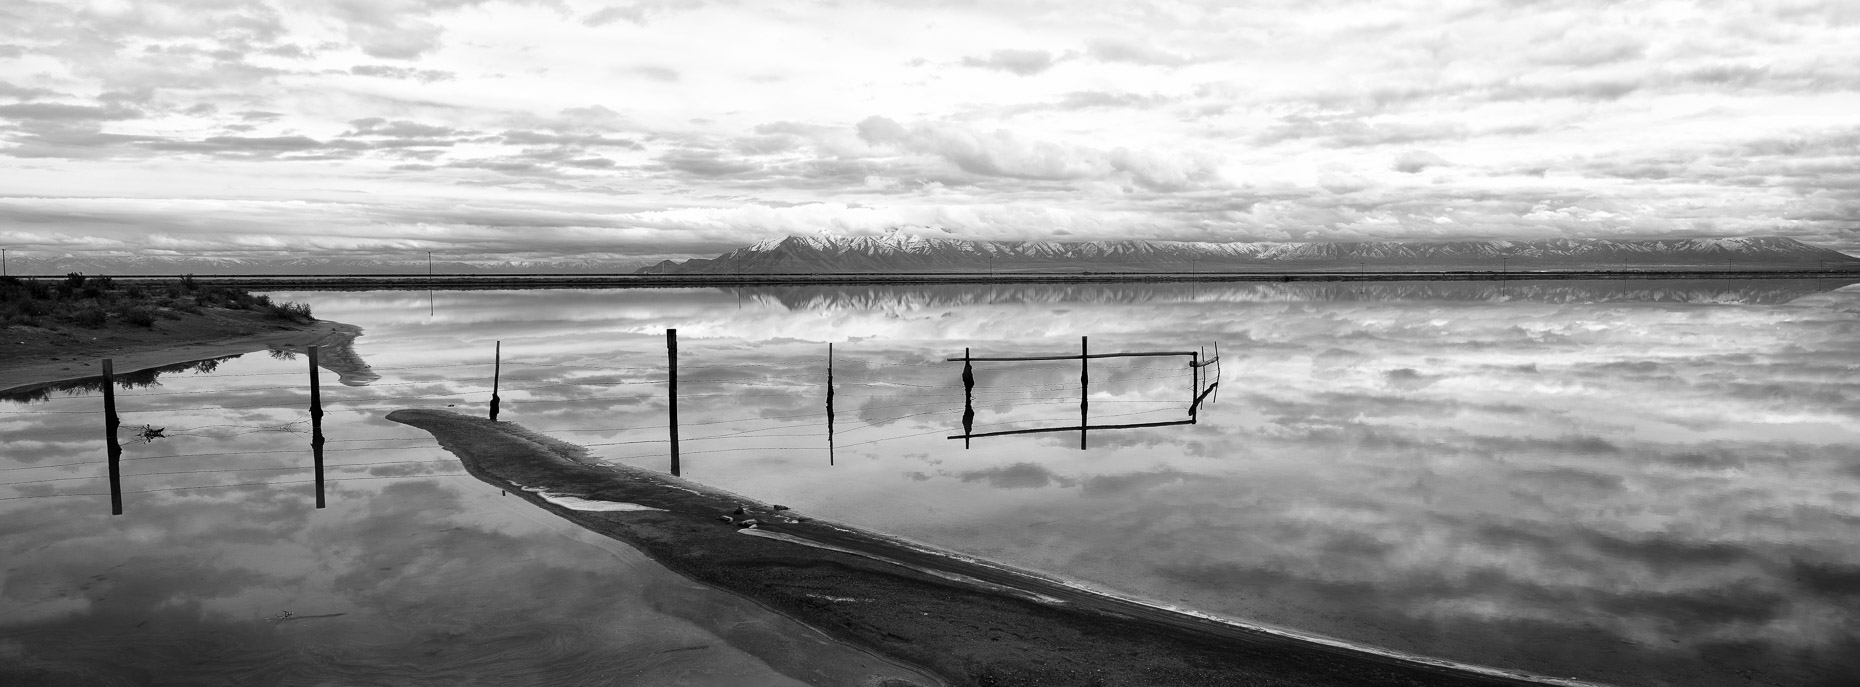 Submerged Fence in Great Salt Lake